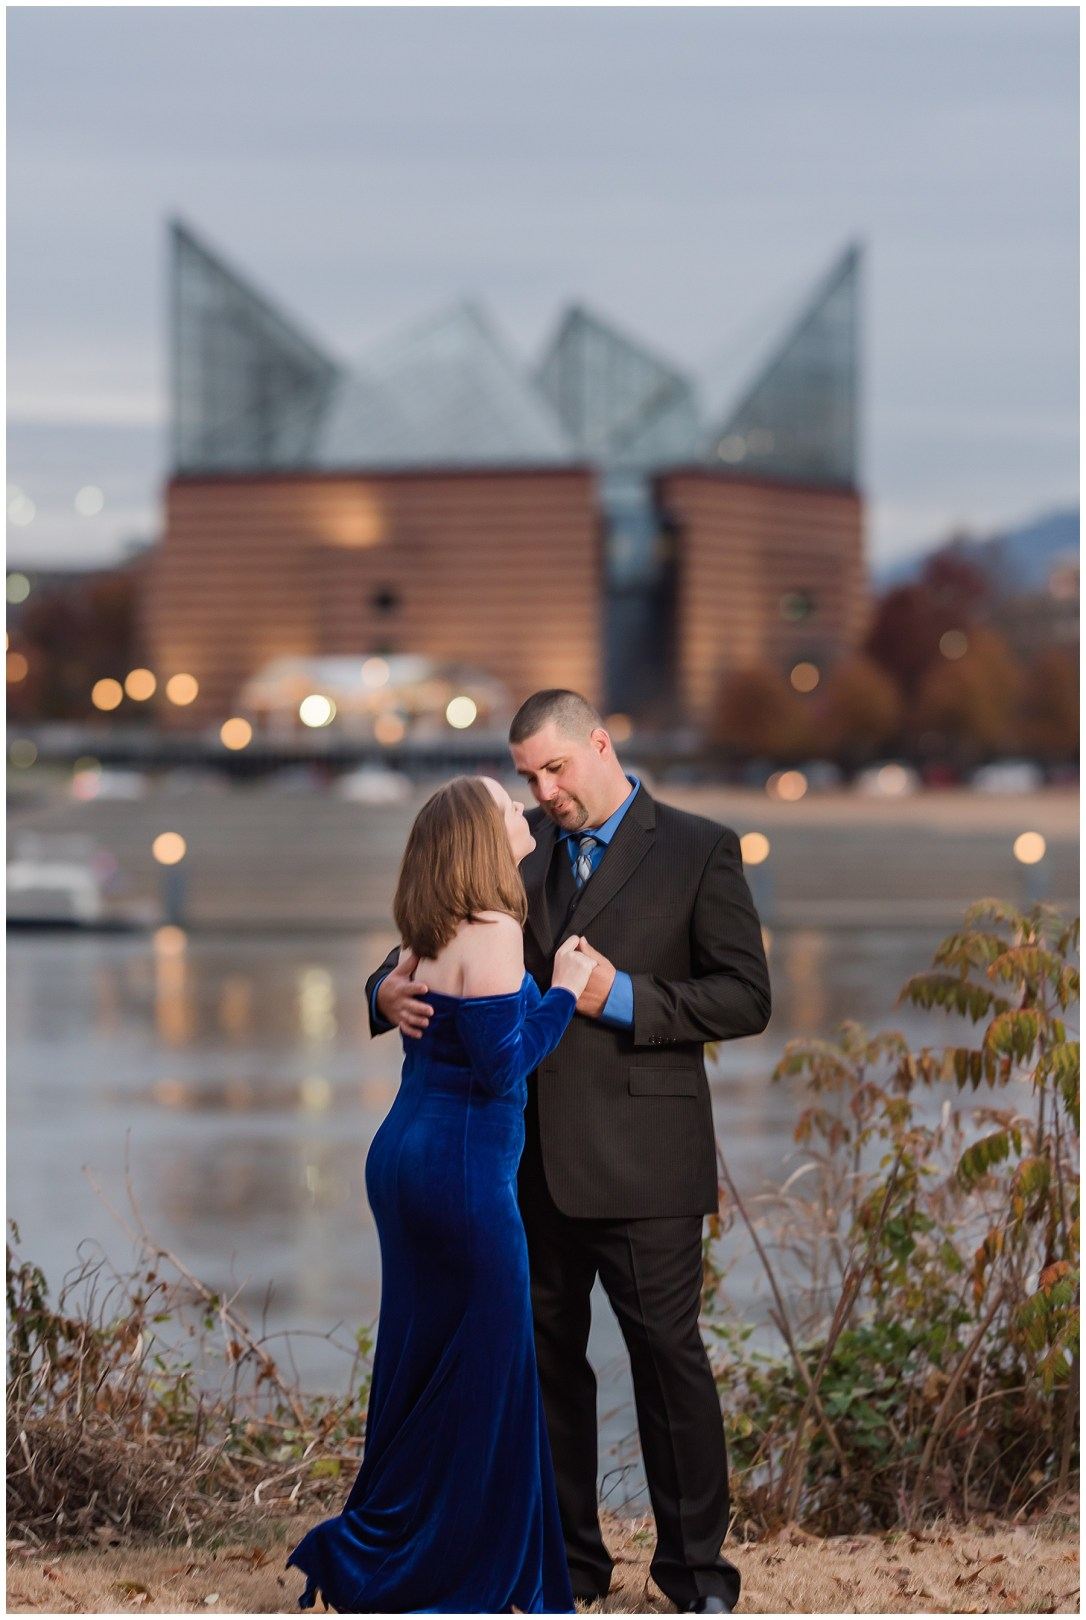 Coolidge Park Engagement Photo Ideas